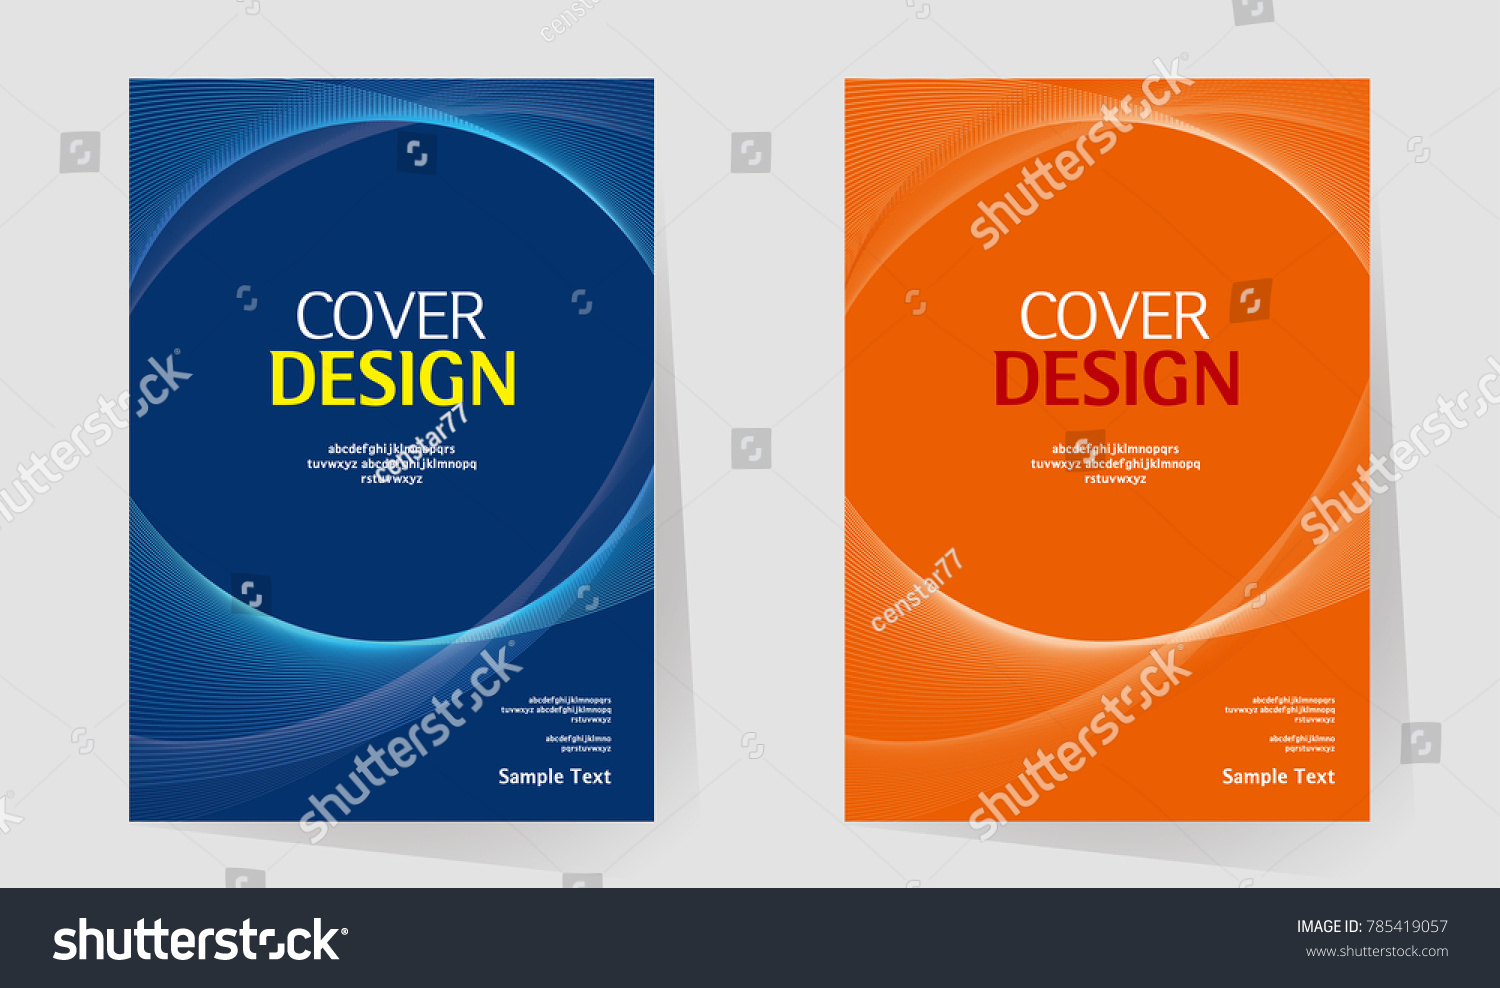 Creative Book Cover Design Samples ~ Book cover annual report design layout stock vector royalty free